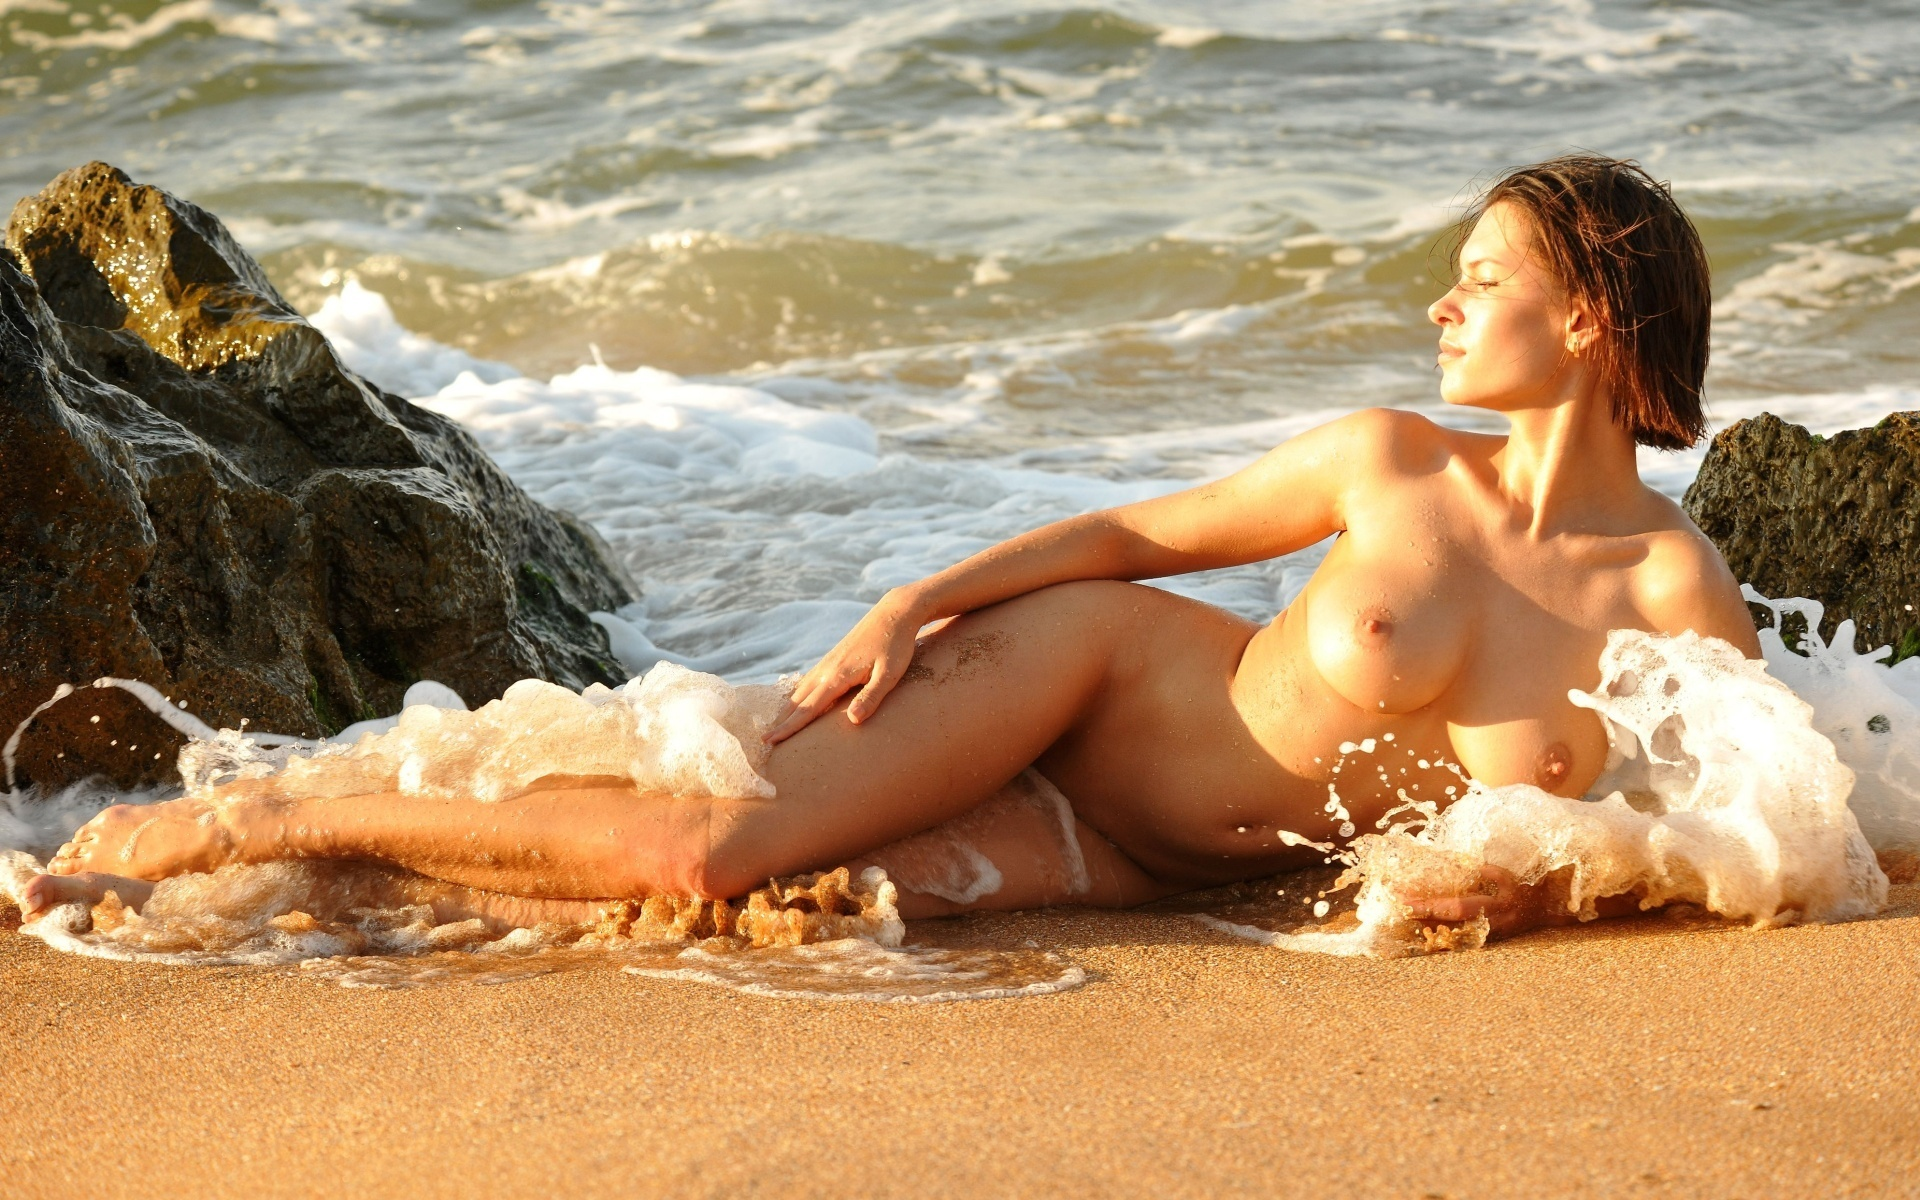 from-beach-babe-nude-rosemarr-simpson-pic-nude